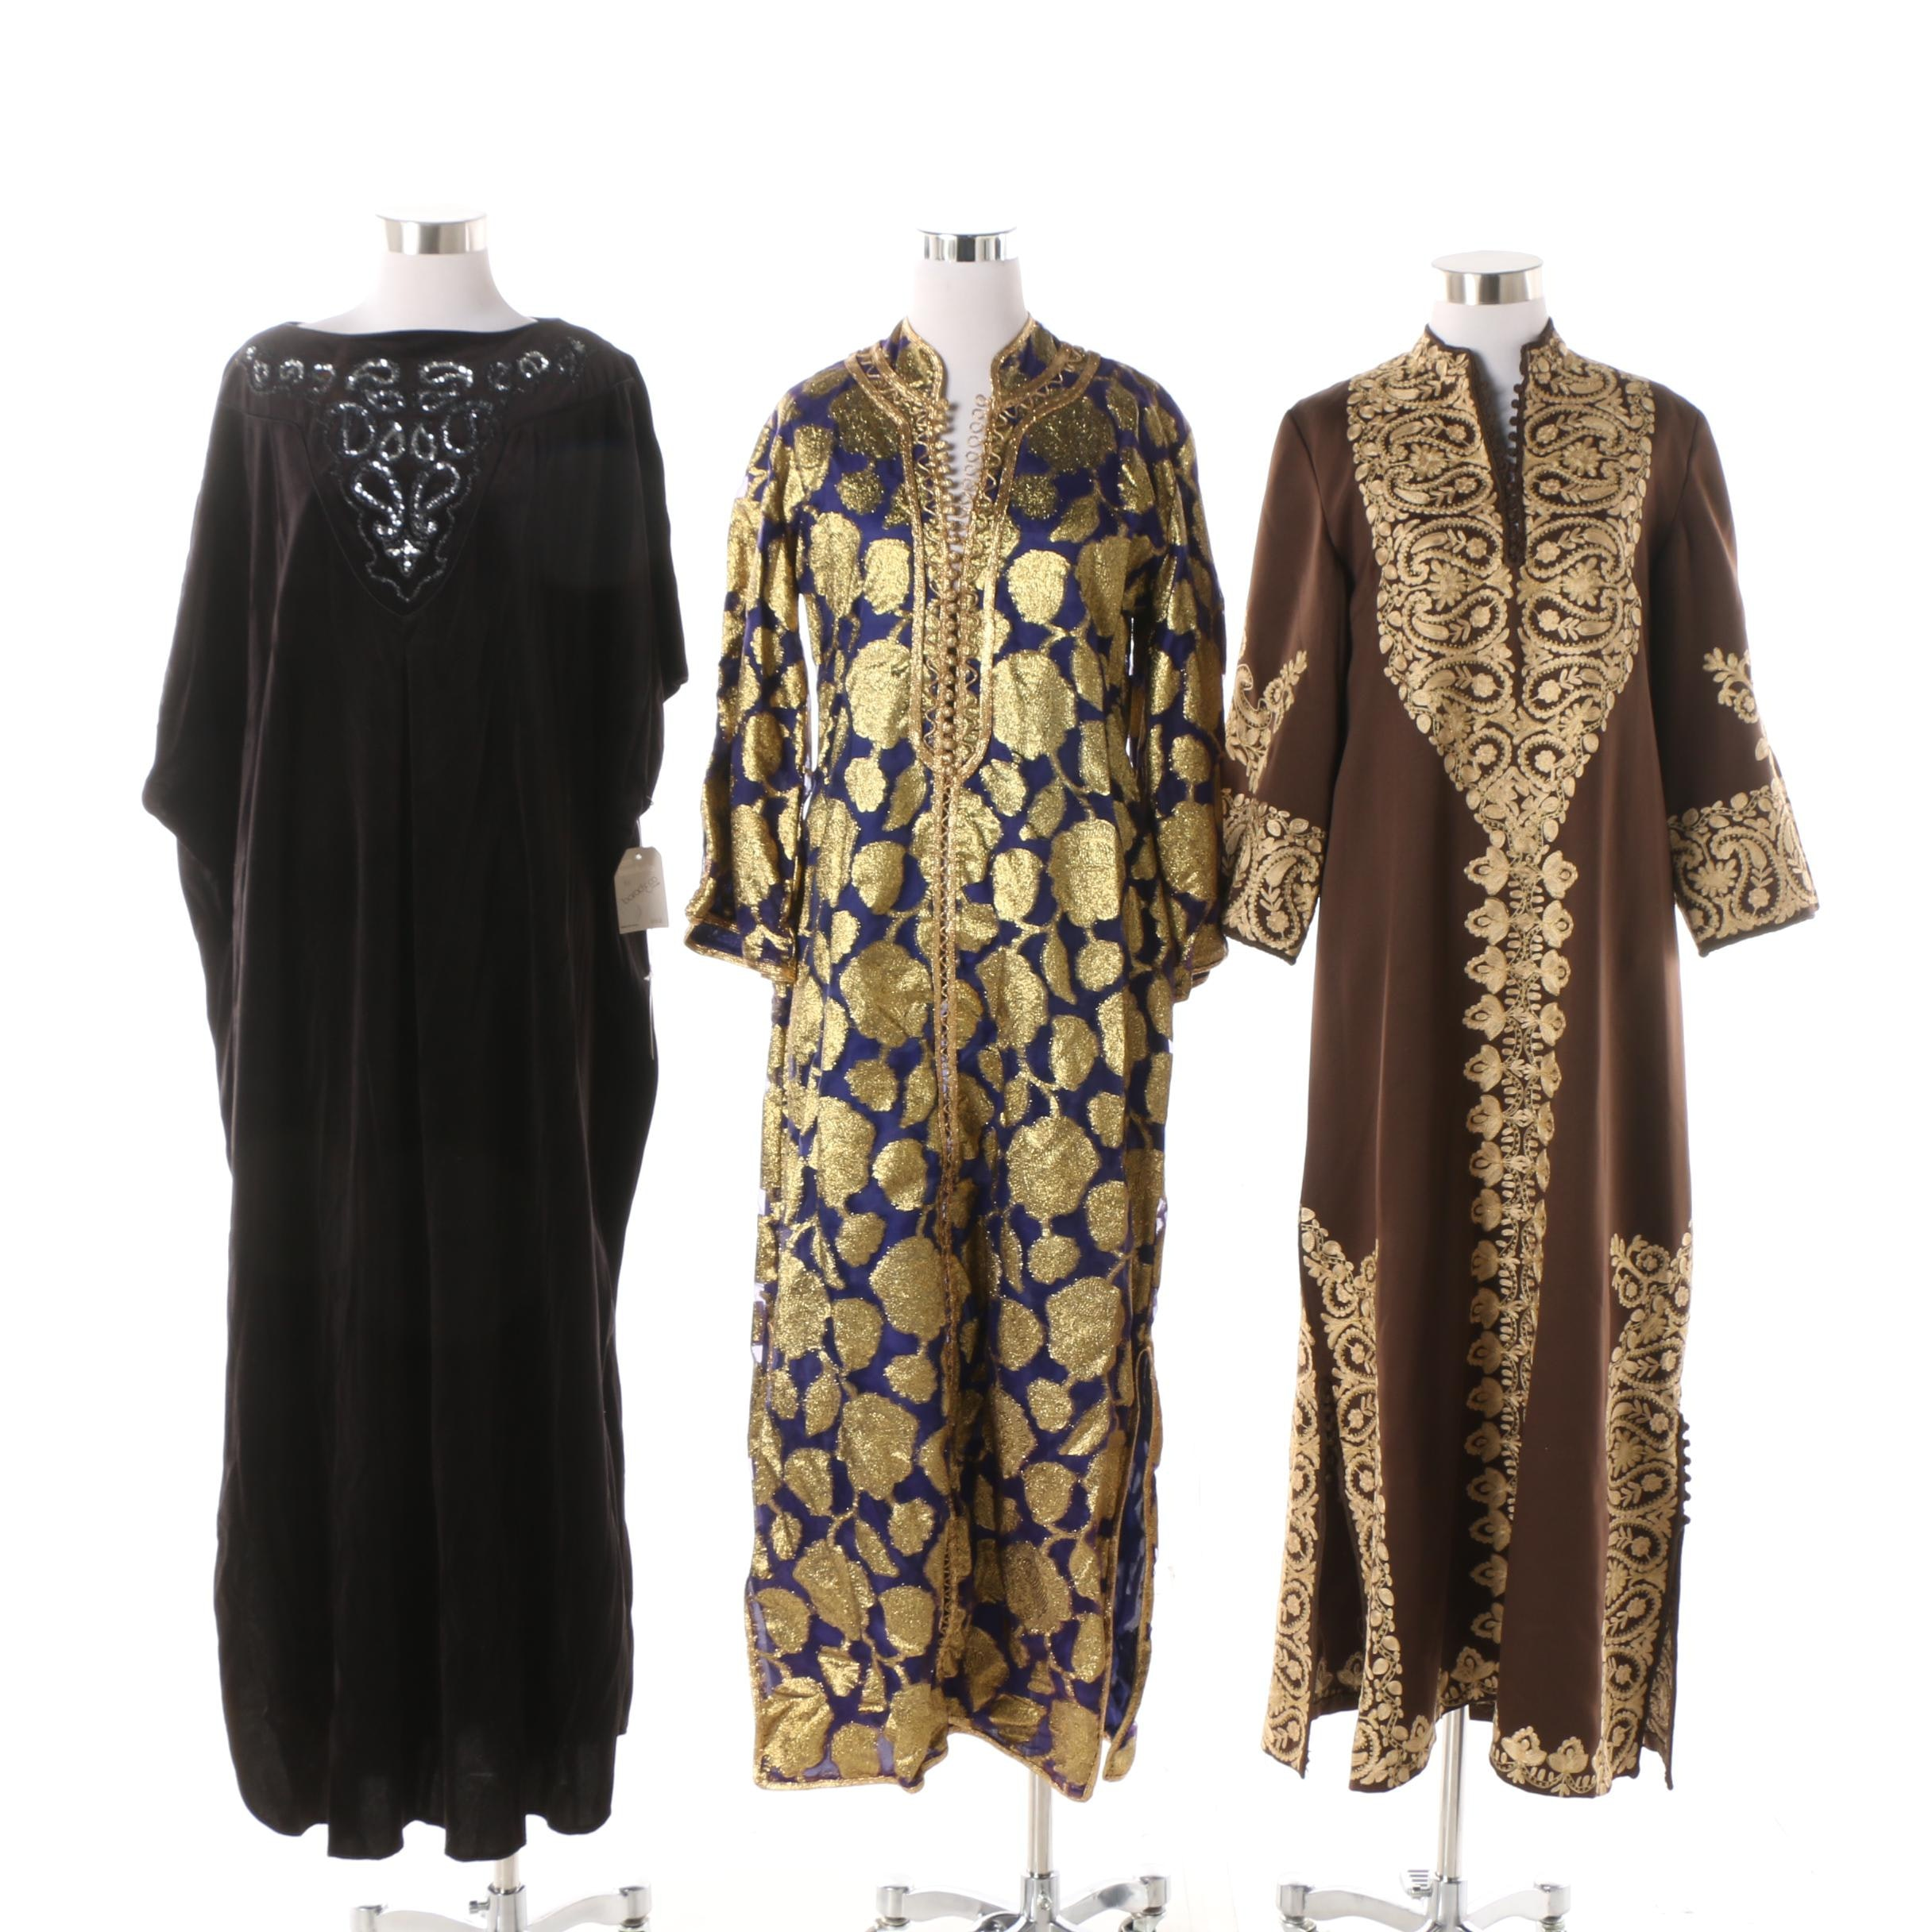 Women's Vintage Embroidered and Embellished Kaftans including Tom Bezduda